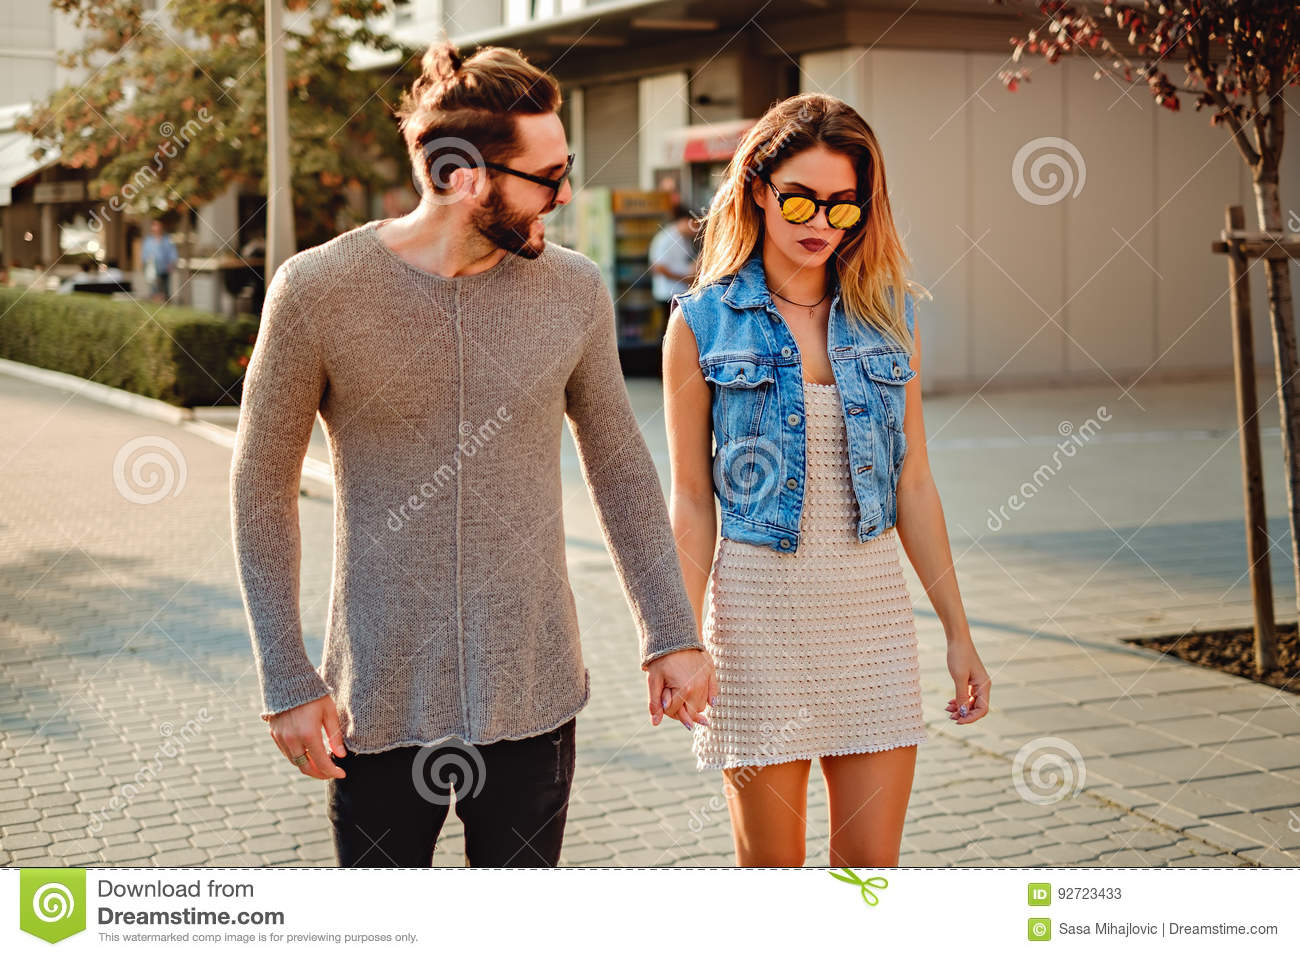 Man Trying To Cheer Up Girlfriend While They Walking Stock Image